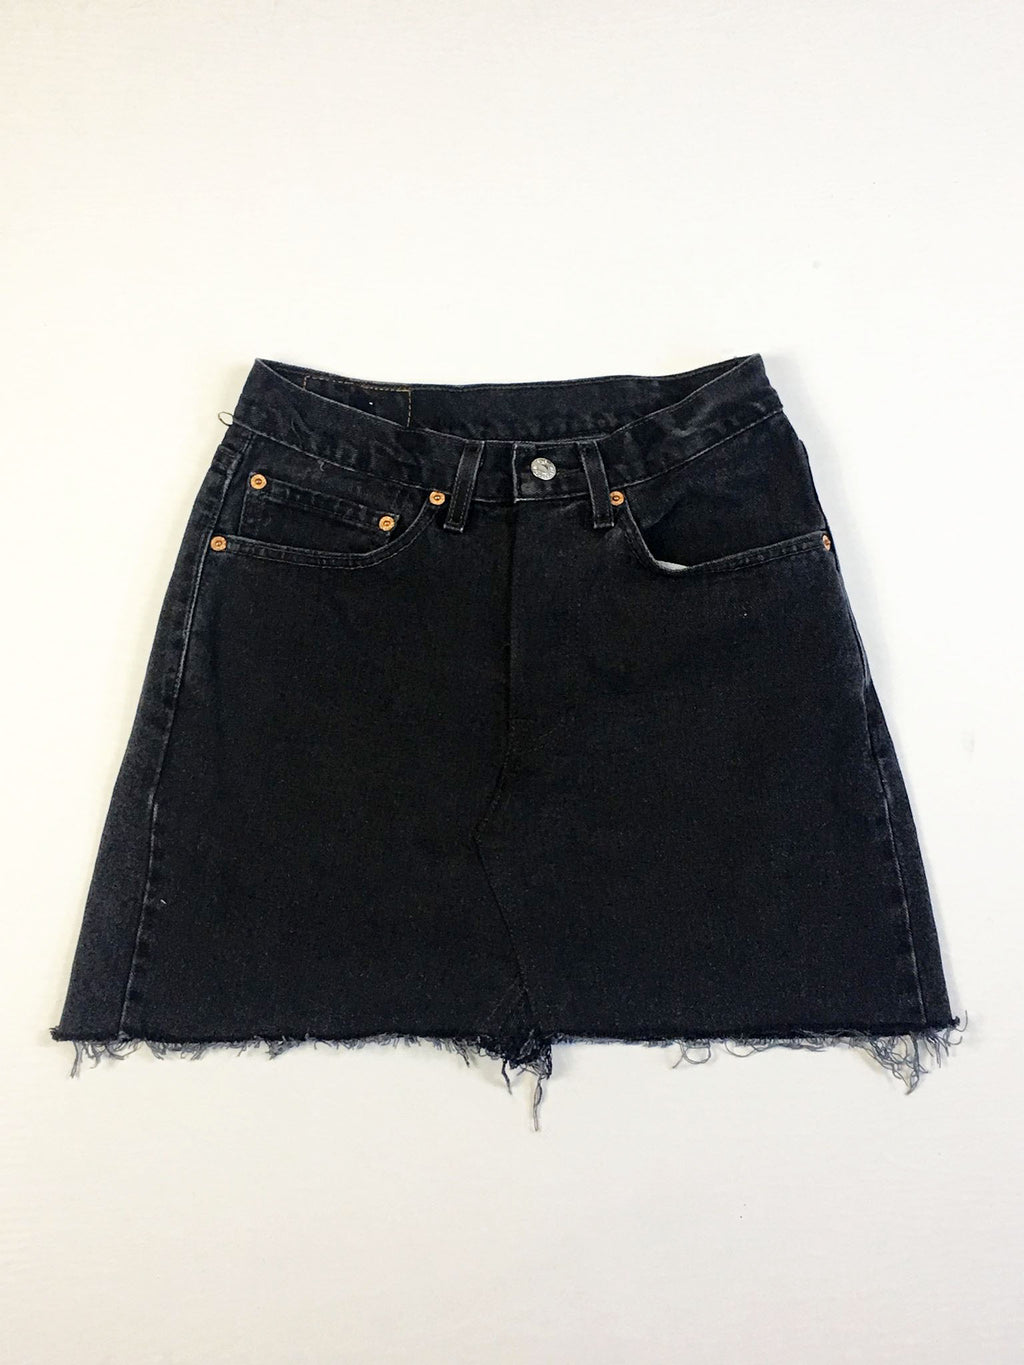 VINTAGE LEVI DENIM SKIRT - GUSSET STITCH - BLACK DENIM